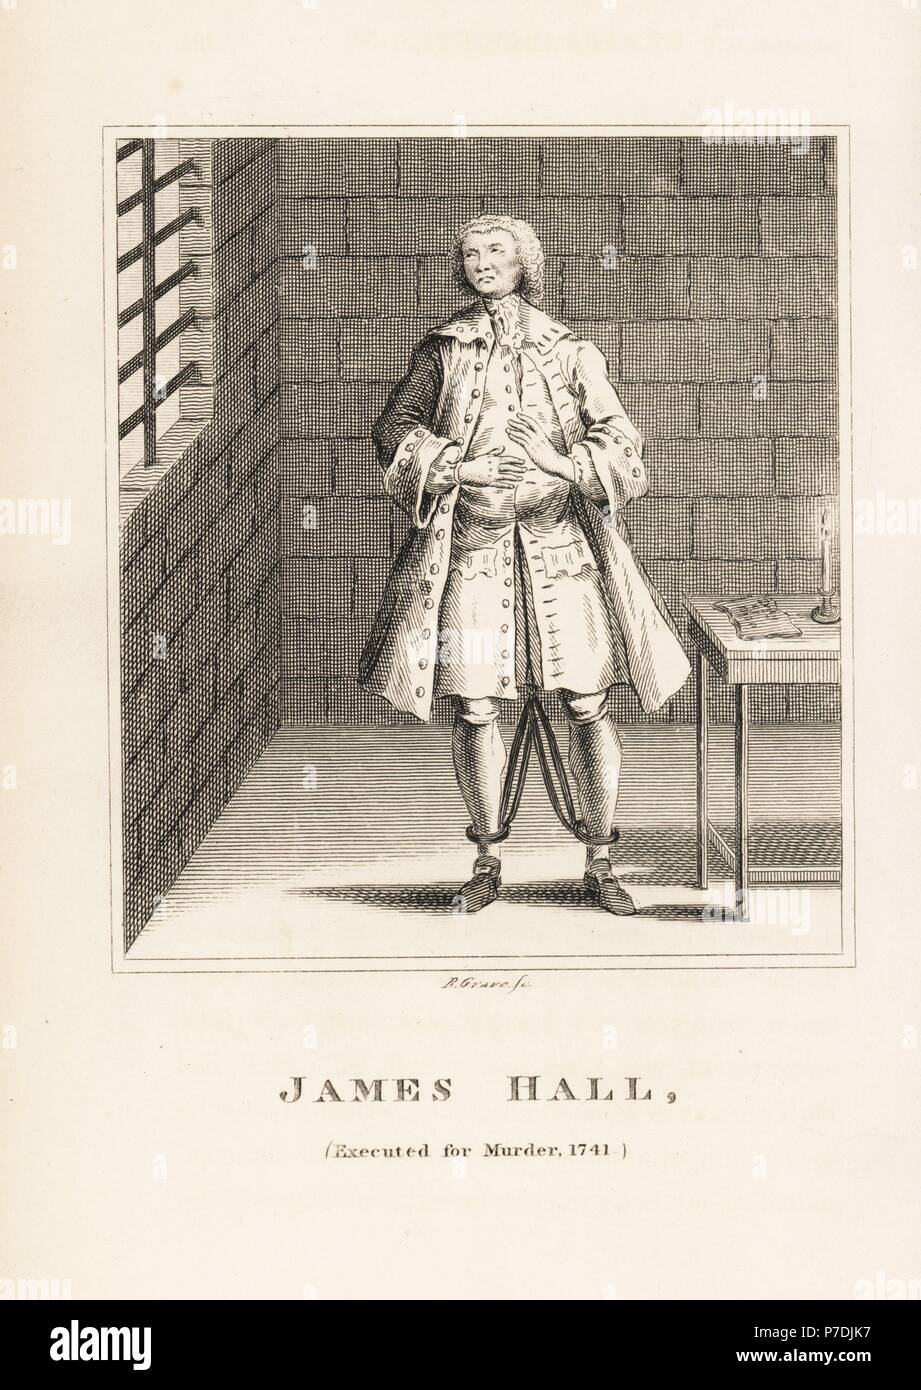 James Hall, executed for the murder of his employer in 1741. In shackles in his prison cell. Copperplate engraving by R. Grave from John Caulfield's Portraits, Memoirs and Characters of Remarkable Persons, Young, London, 1819. - Stock Image